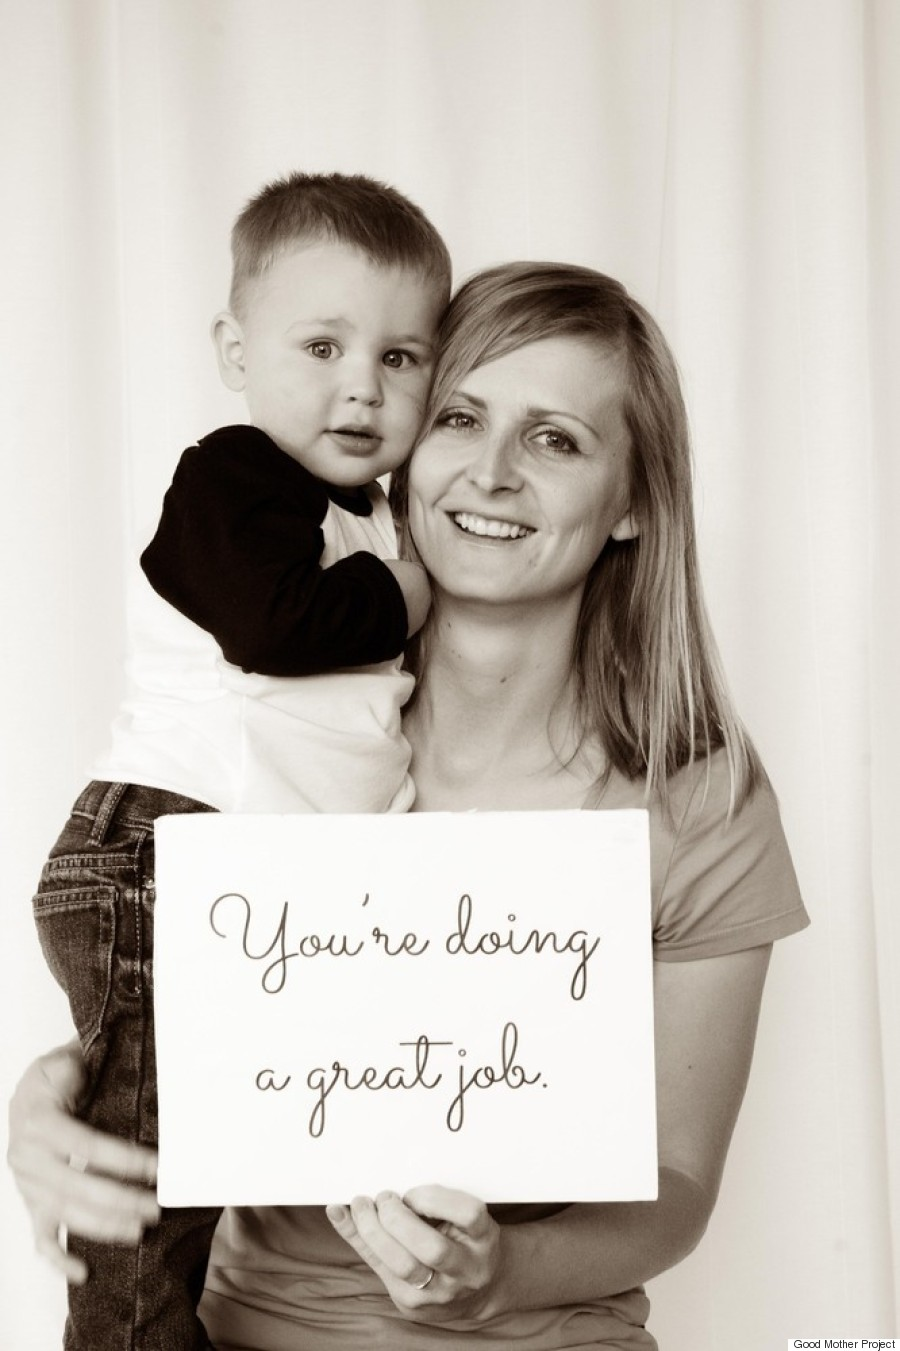 moms share supportive messages for others struggling